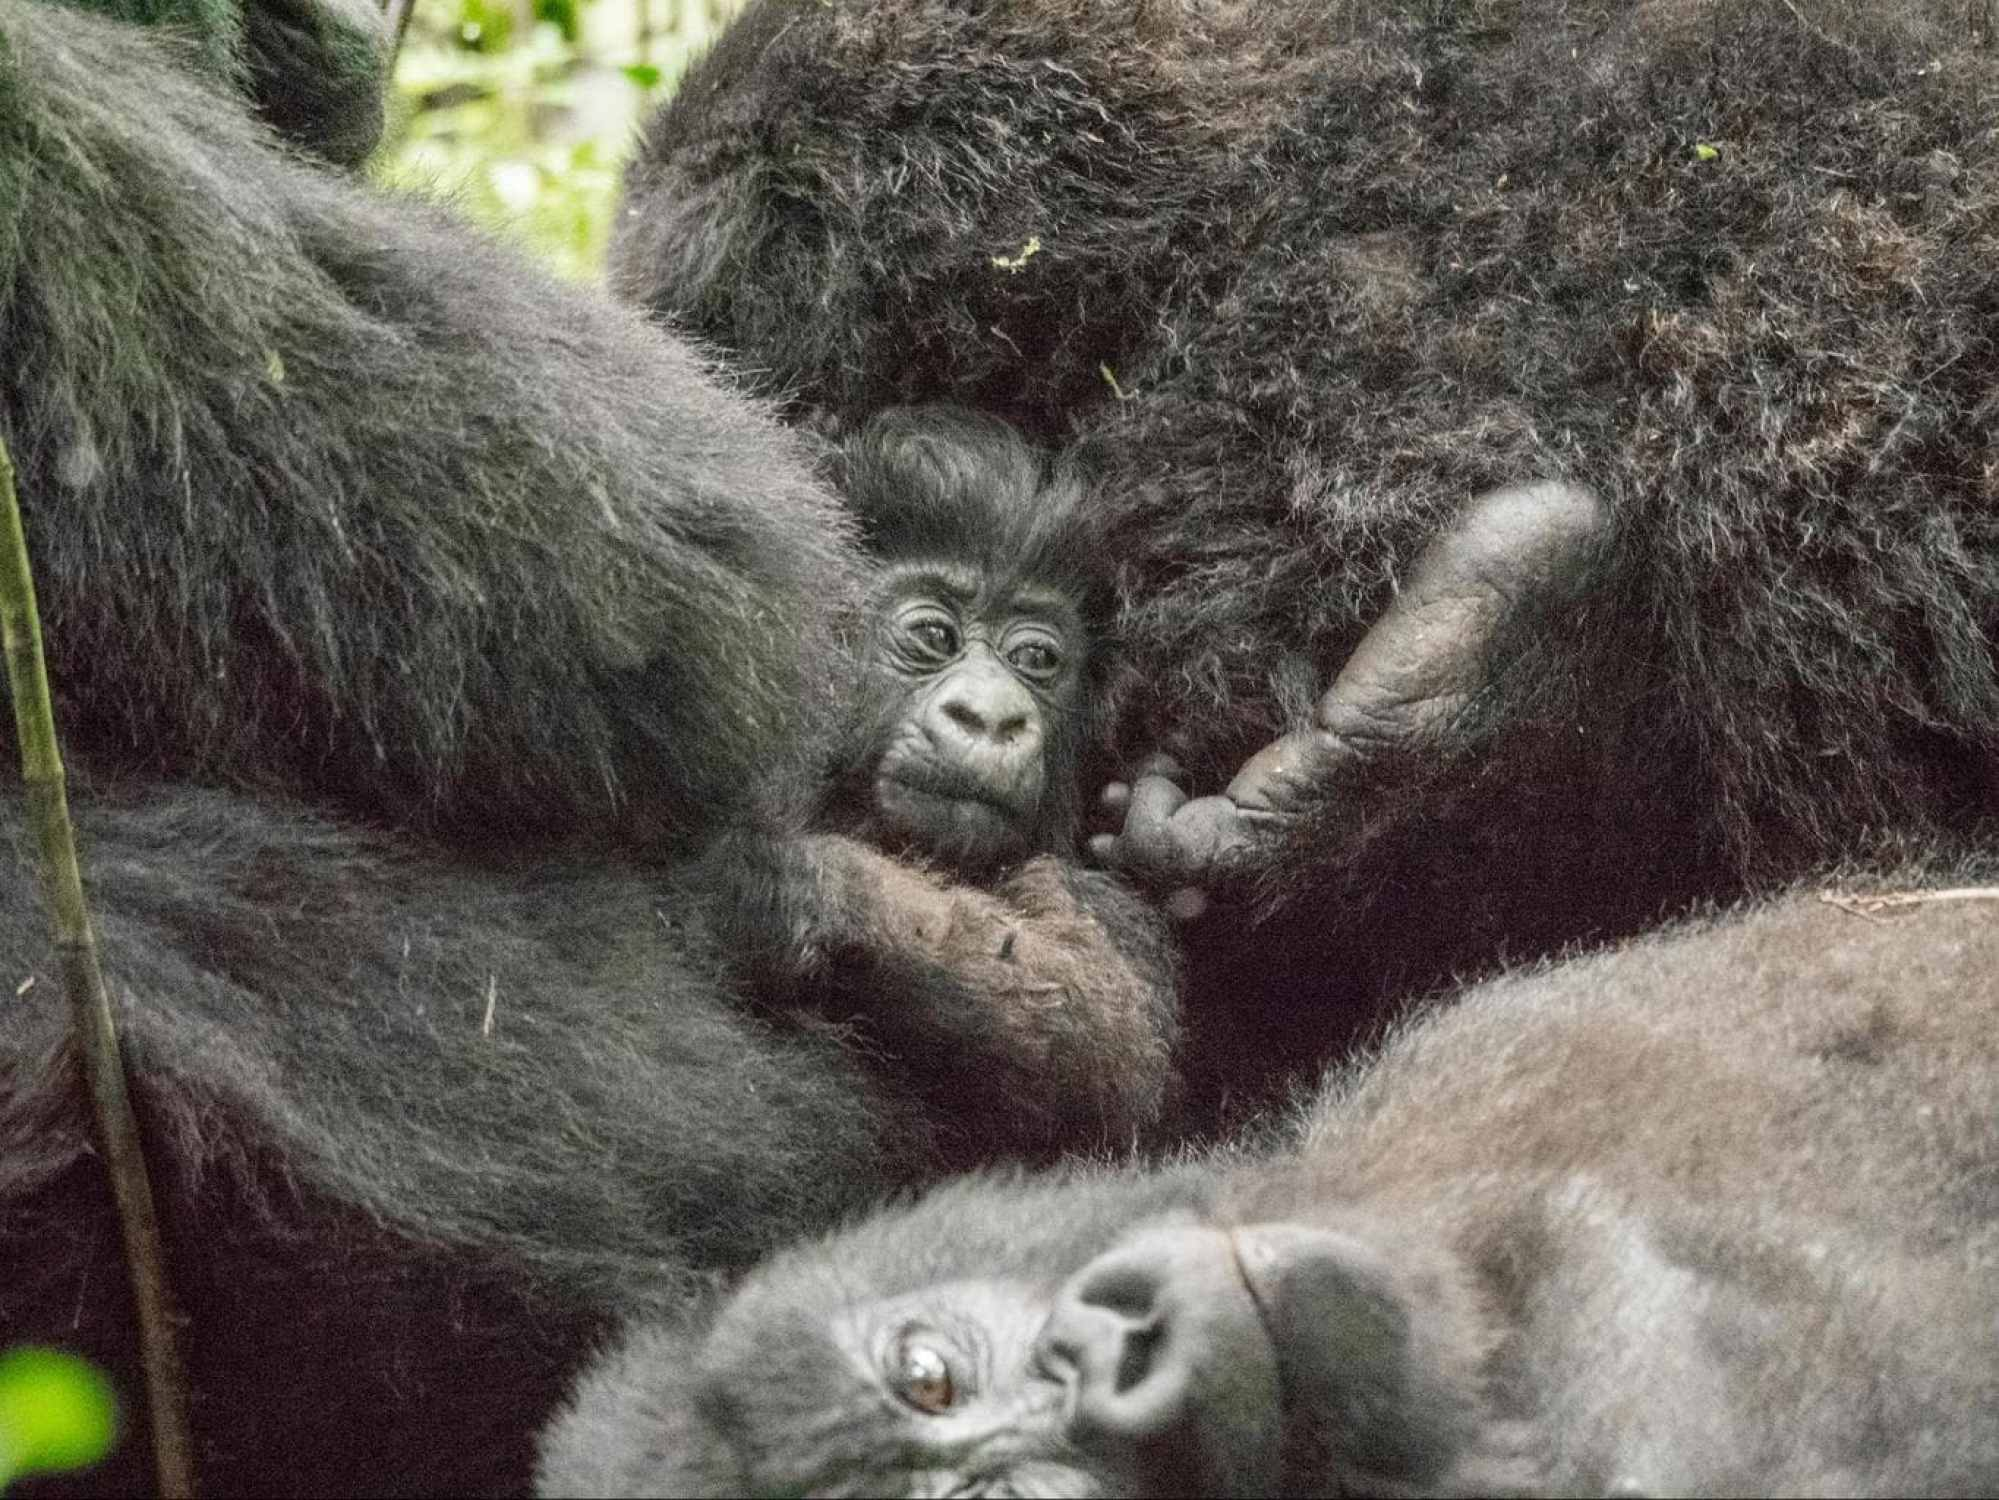 Baby gorilla with mommy